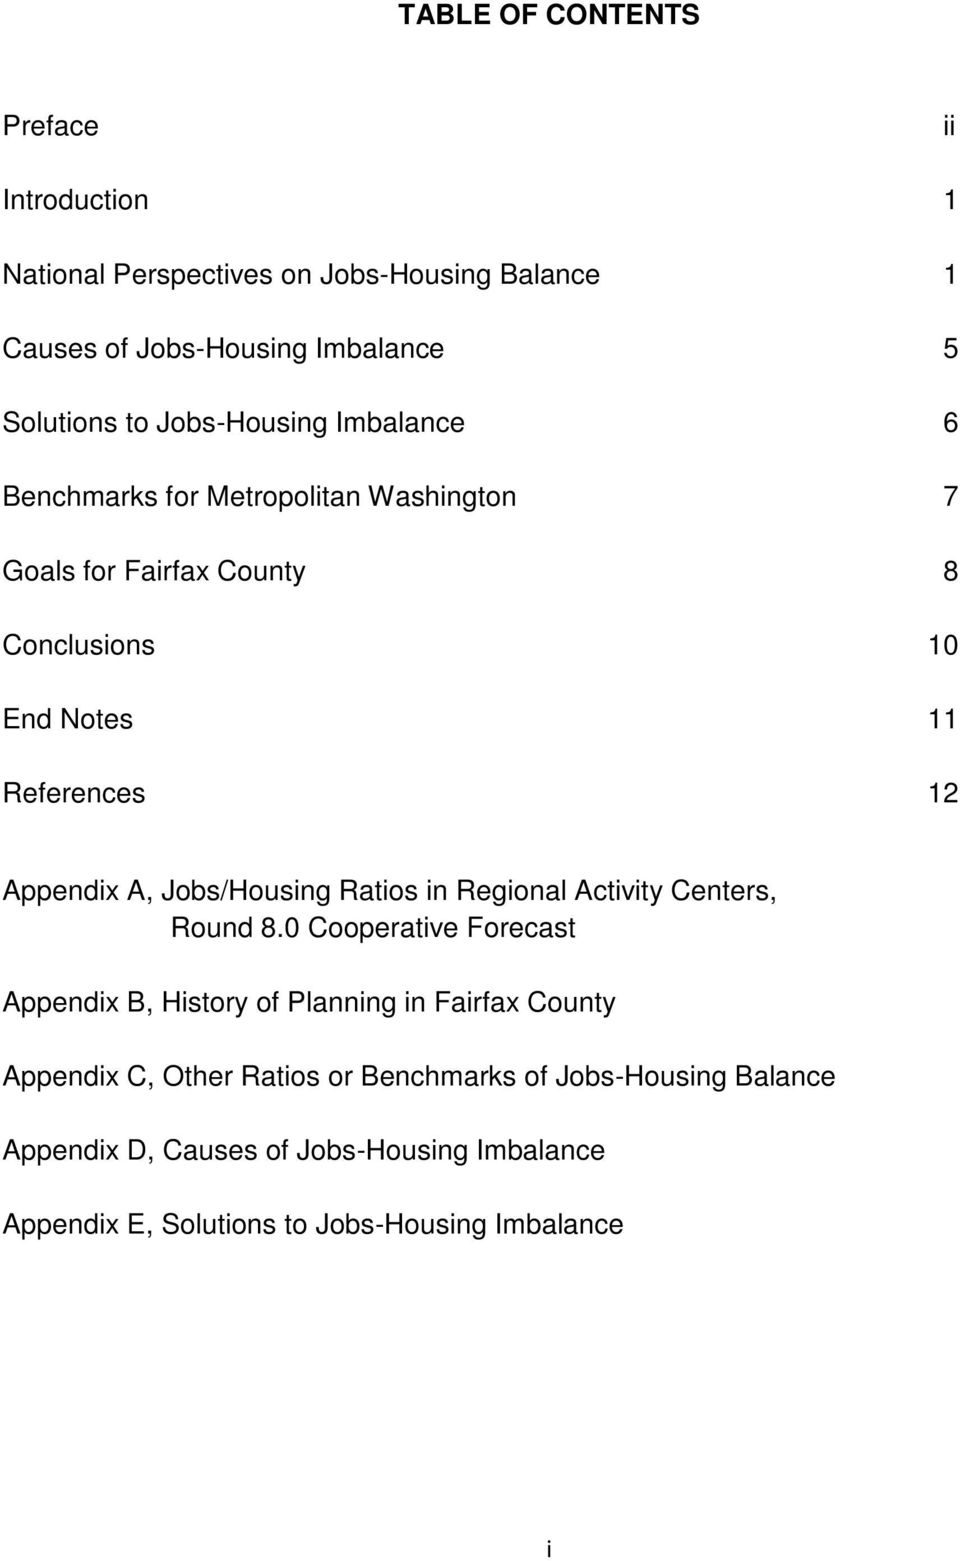 A, Jobs/Housing Ratios in Regional Activity Centers, Round 8.